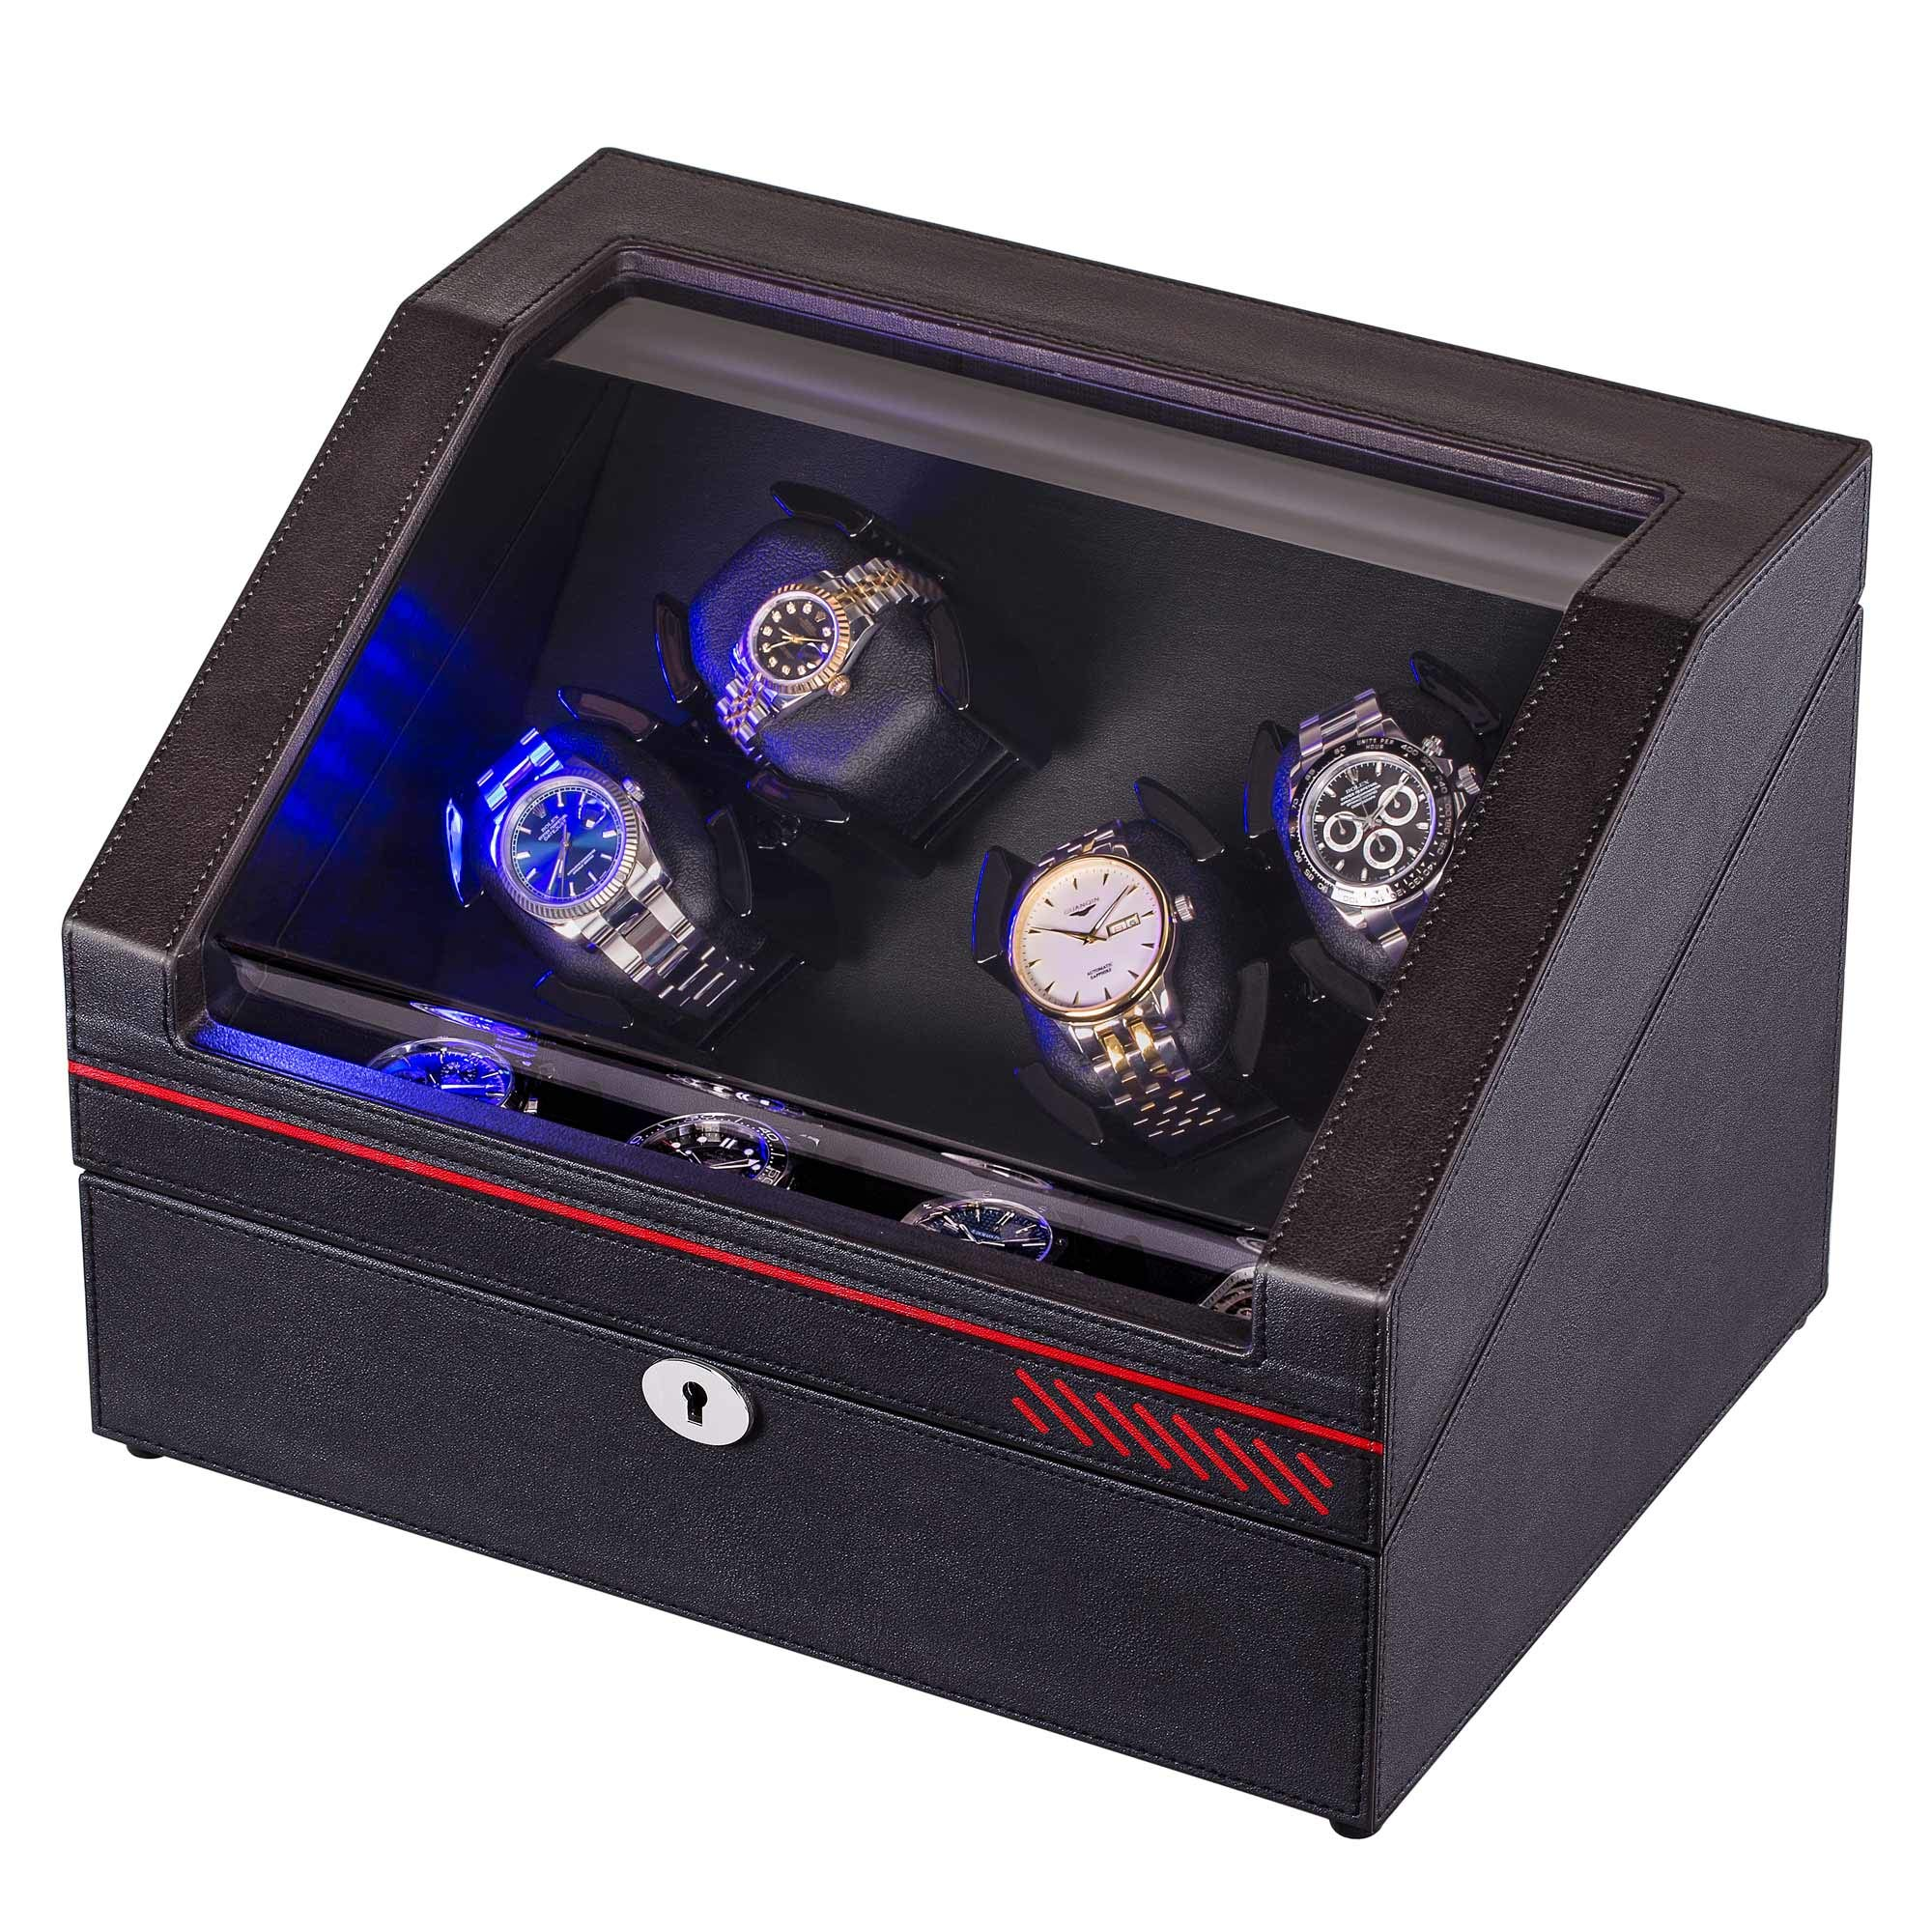 Watch Winders, Automatic Watch Winder Box for Rolex Watches, 4+4 Watch Storages Case Built-in Illumination